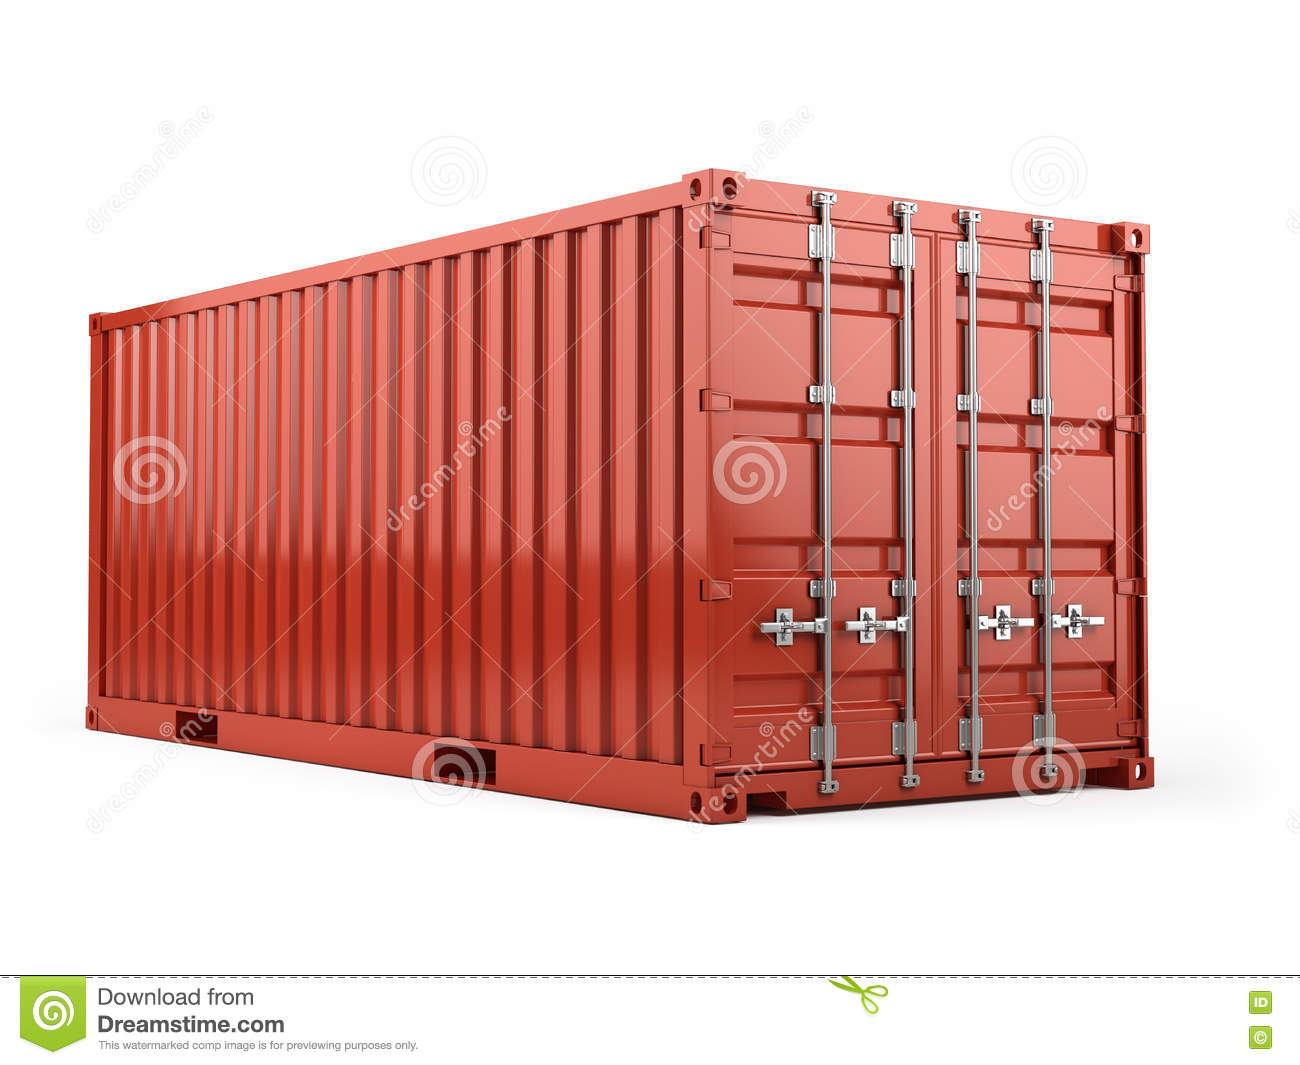 Red Cargo Freight Shipping Container Against A White Background